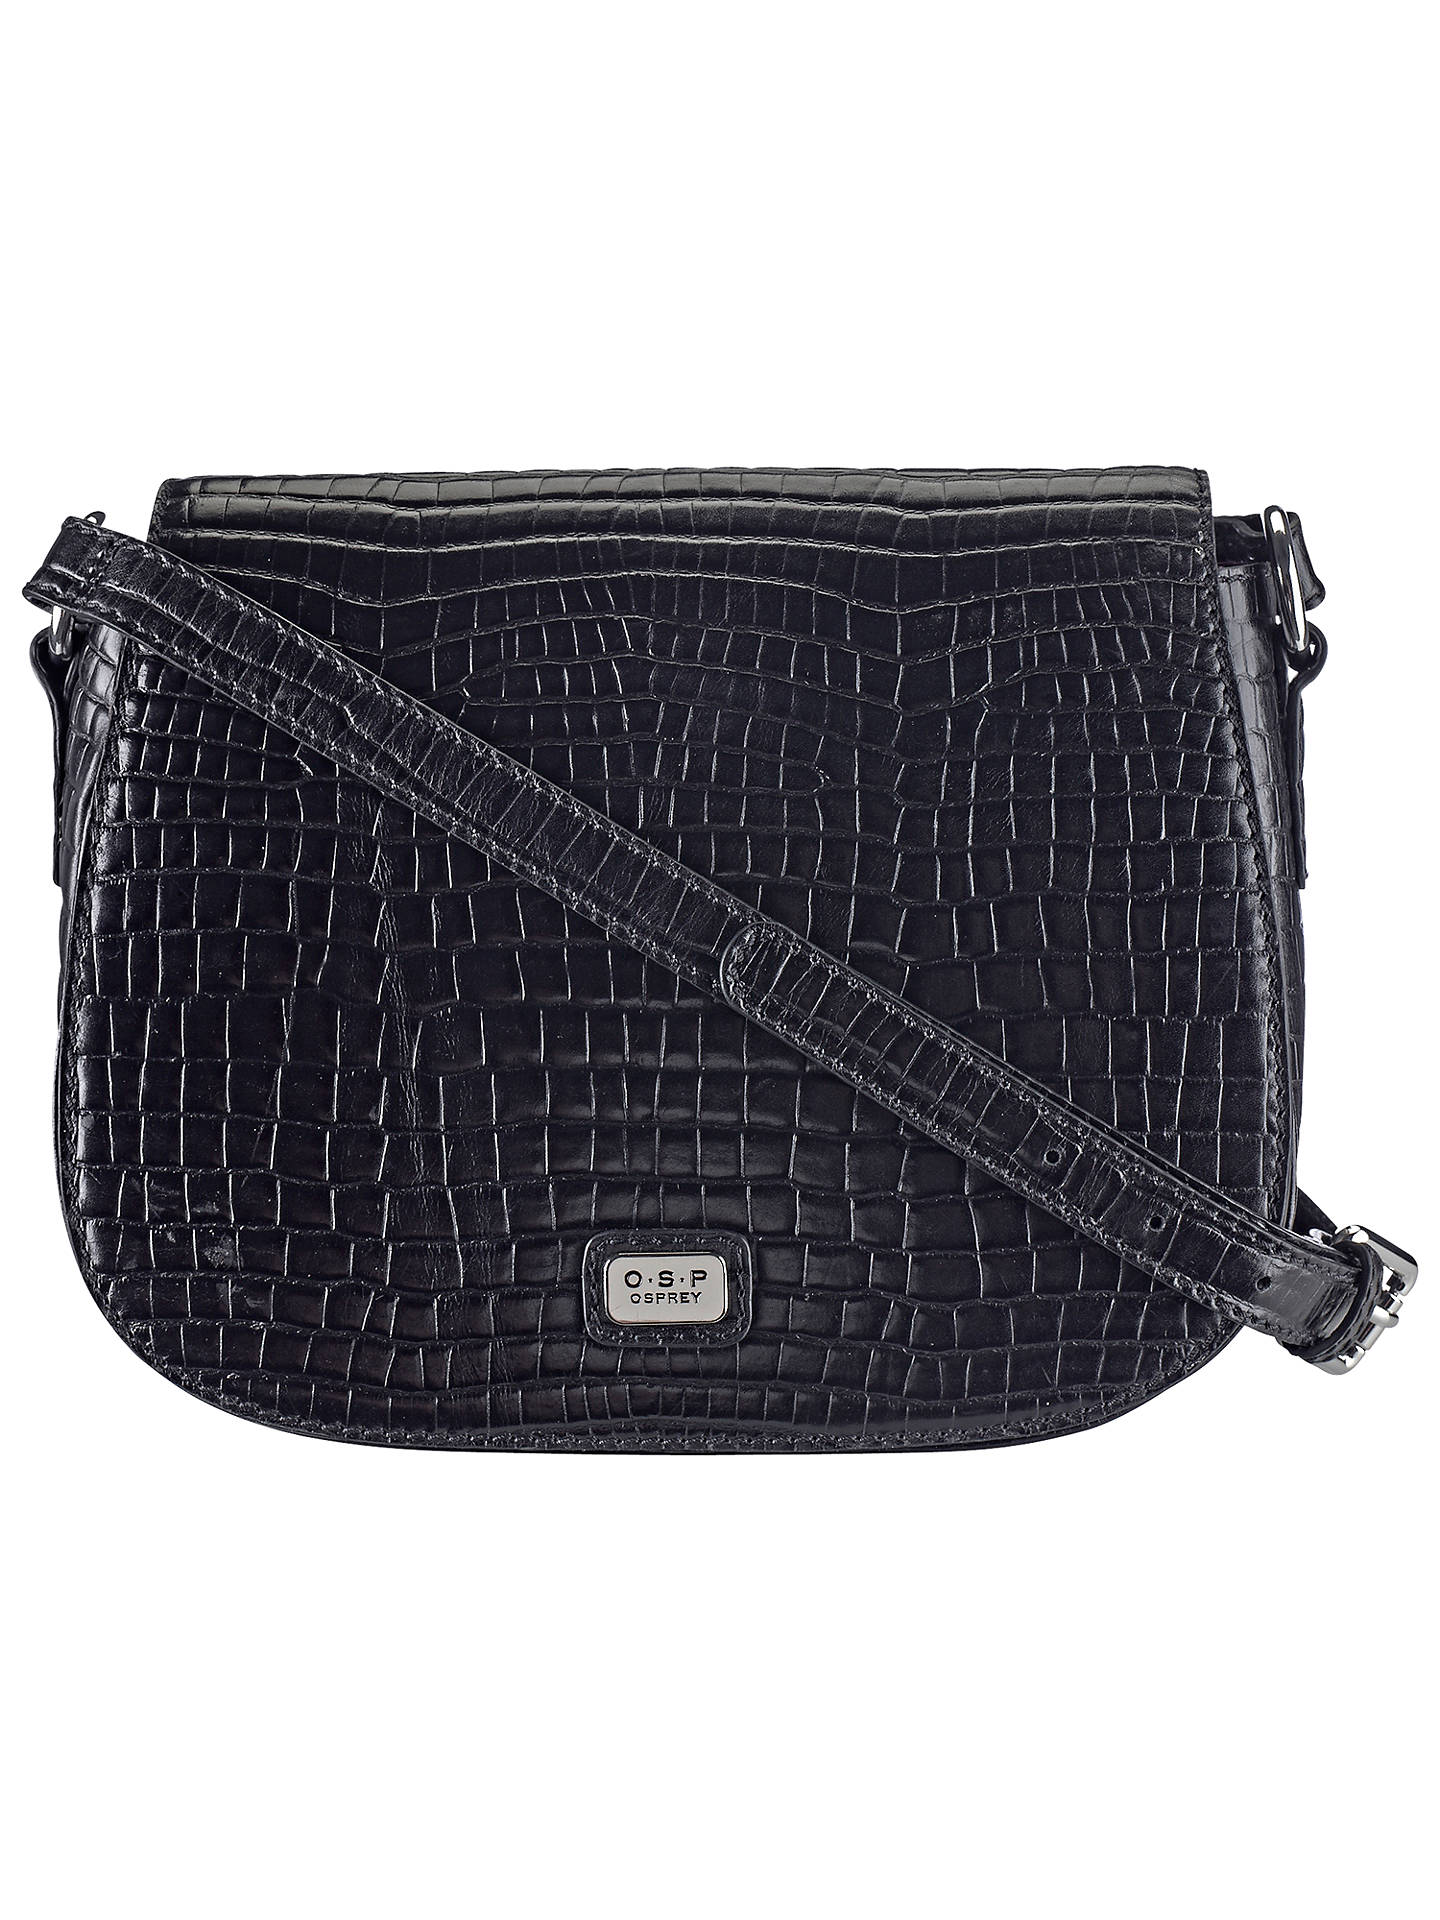 S P Osprey Andria Leather Cross Body Bag Black Online At Johnlewis